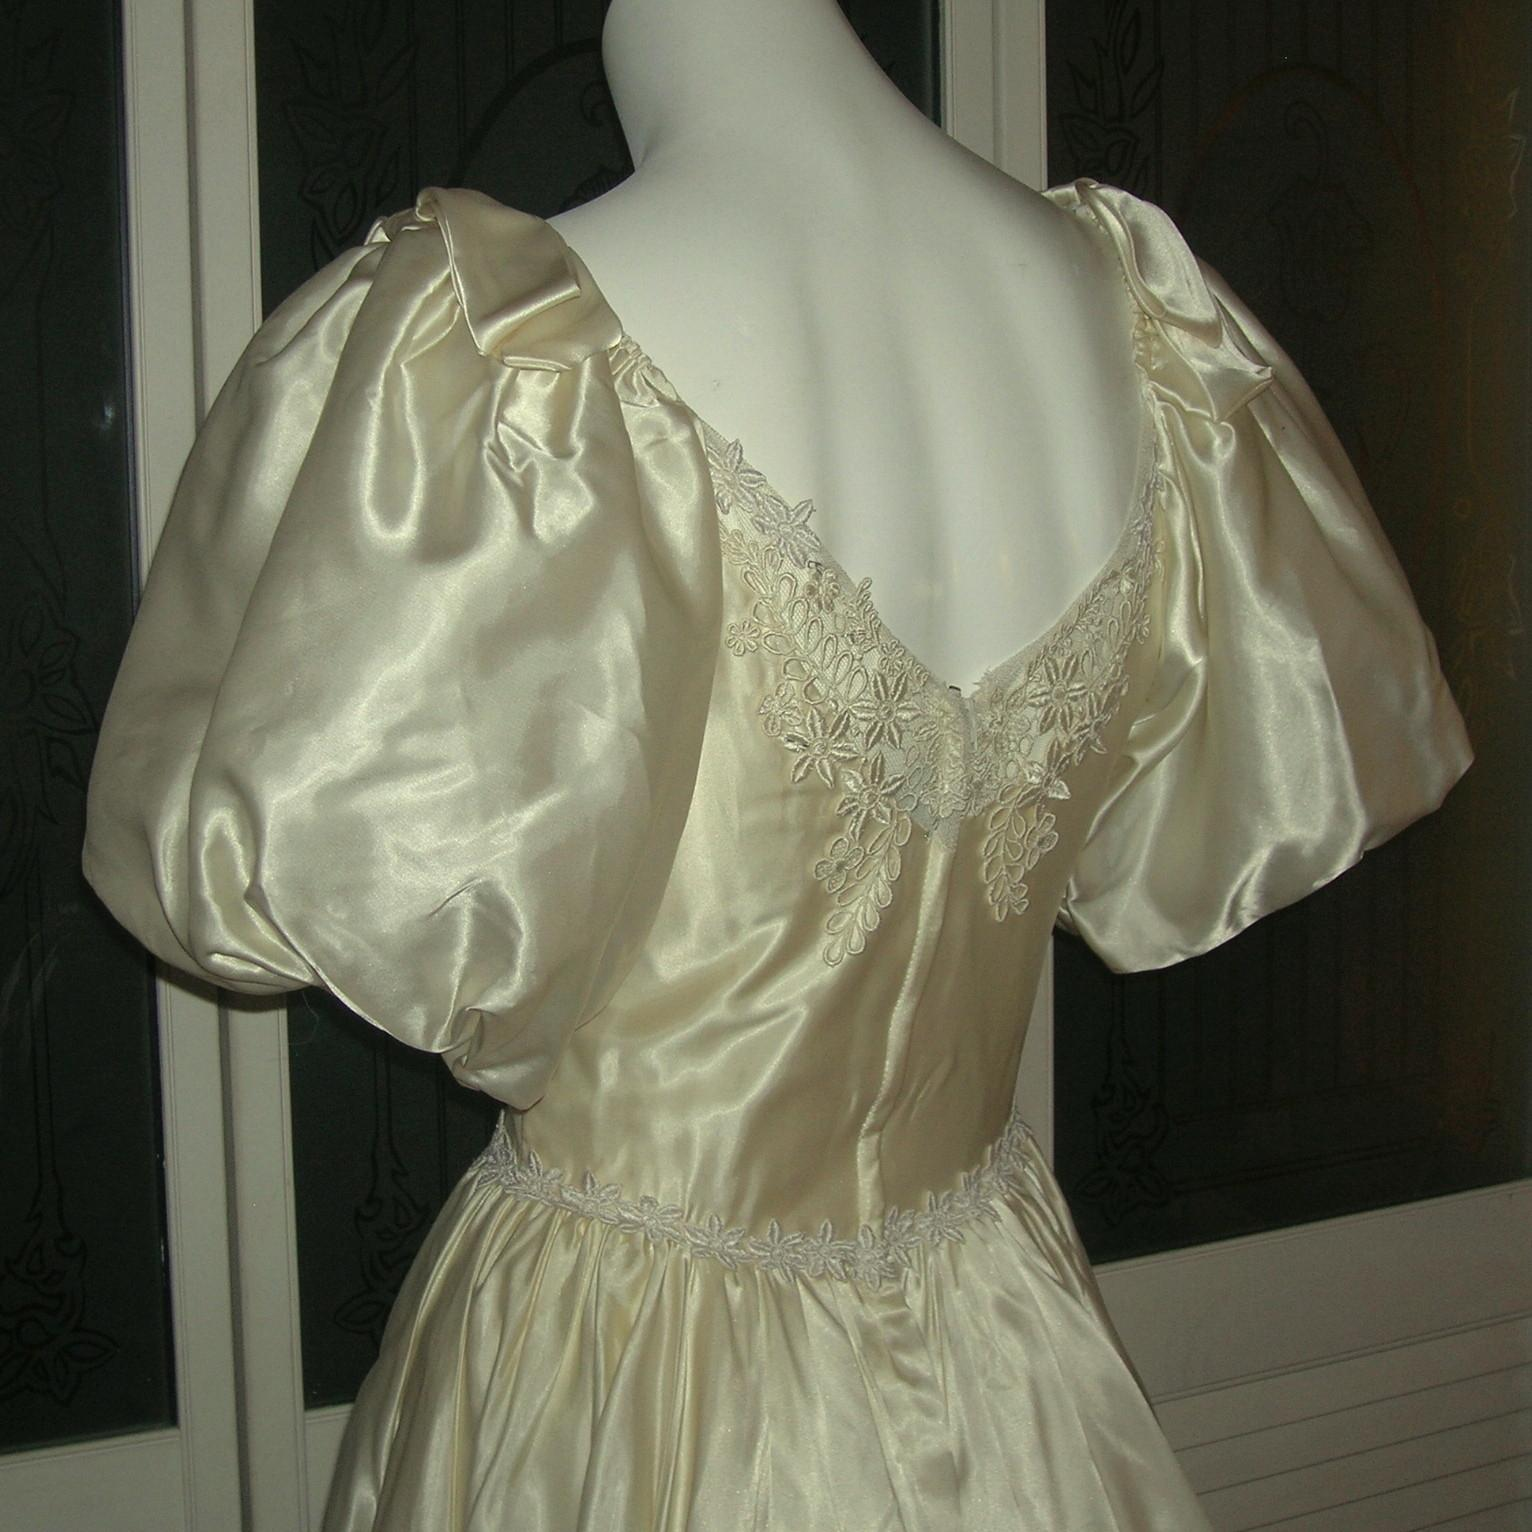 Vintage Liquid Satin Cinderella Bridal Gown Wedding Dress. Vintage Wedding Dress Websites. Muslim Wedding Dresses Plus Size. Steven Khalil Wedding Dresses Mermaid. Wedding Gowns Modest Style. Wanda Borges Backless Wedding Dress For Sale. Wedding Dresses Short Ones. The Trumpet Wedding Dresses. Designer Wedding Dresses Dubai